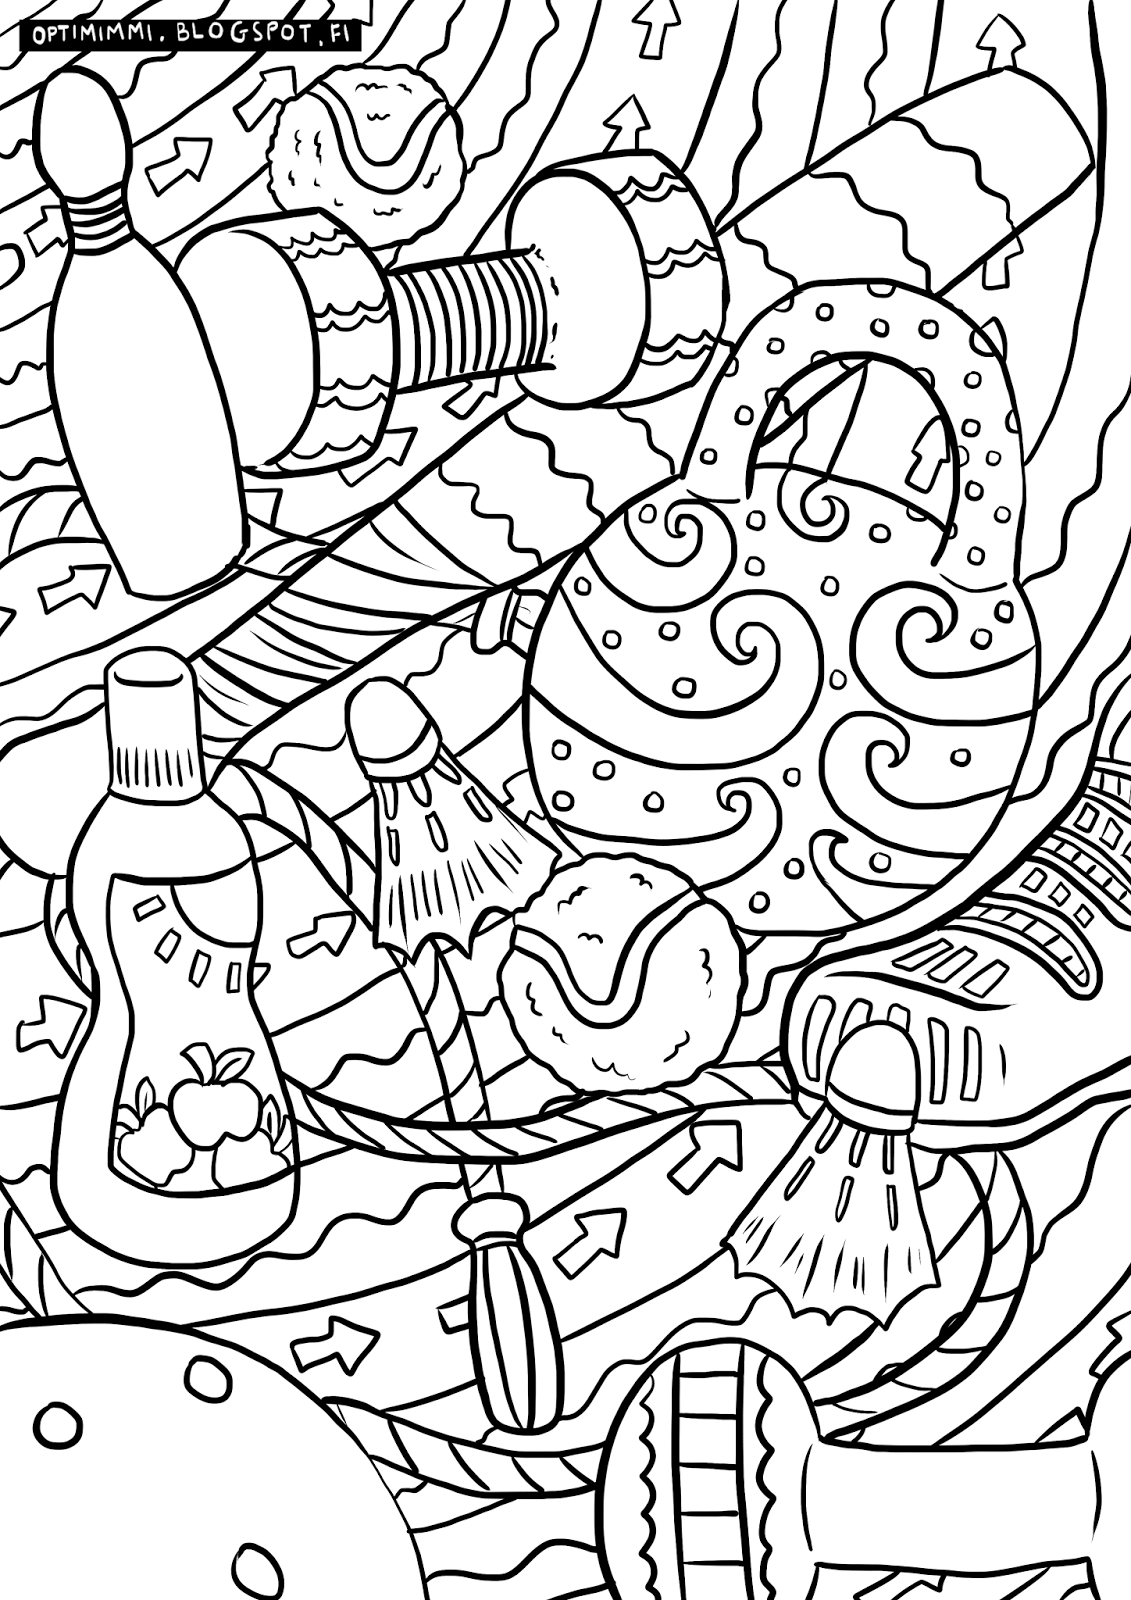 optimimmi energetic sports a coloring page energinen urheilu